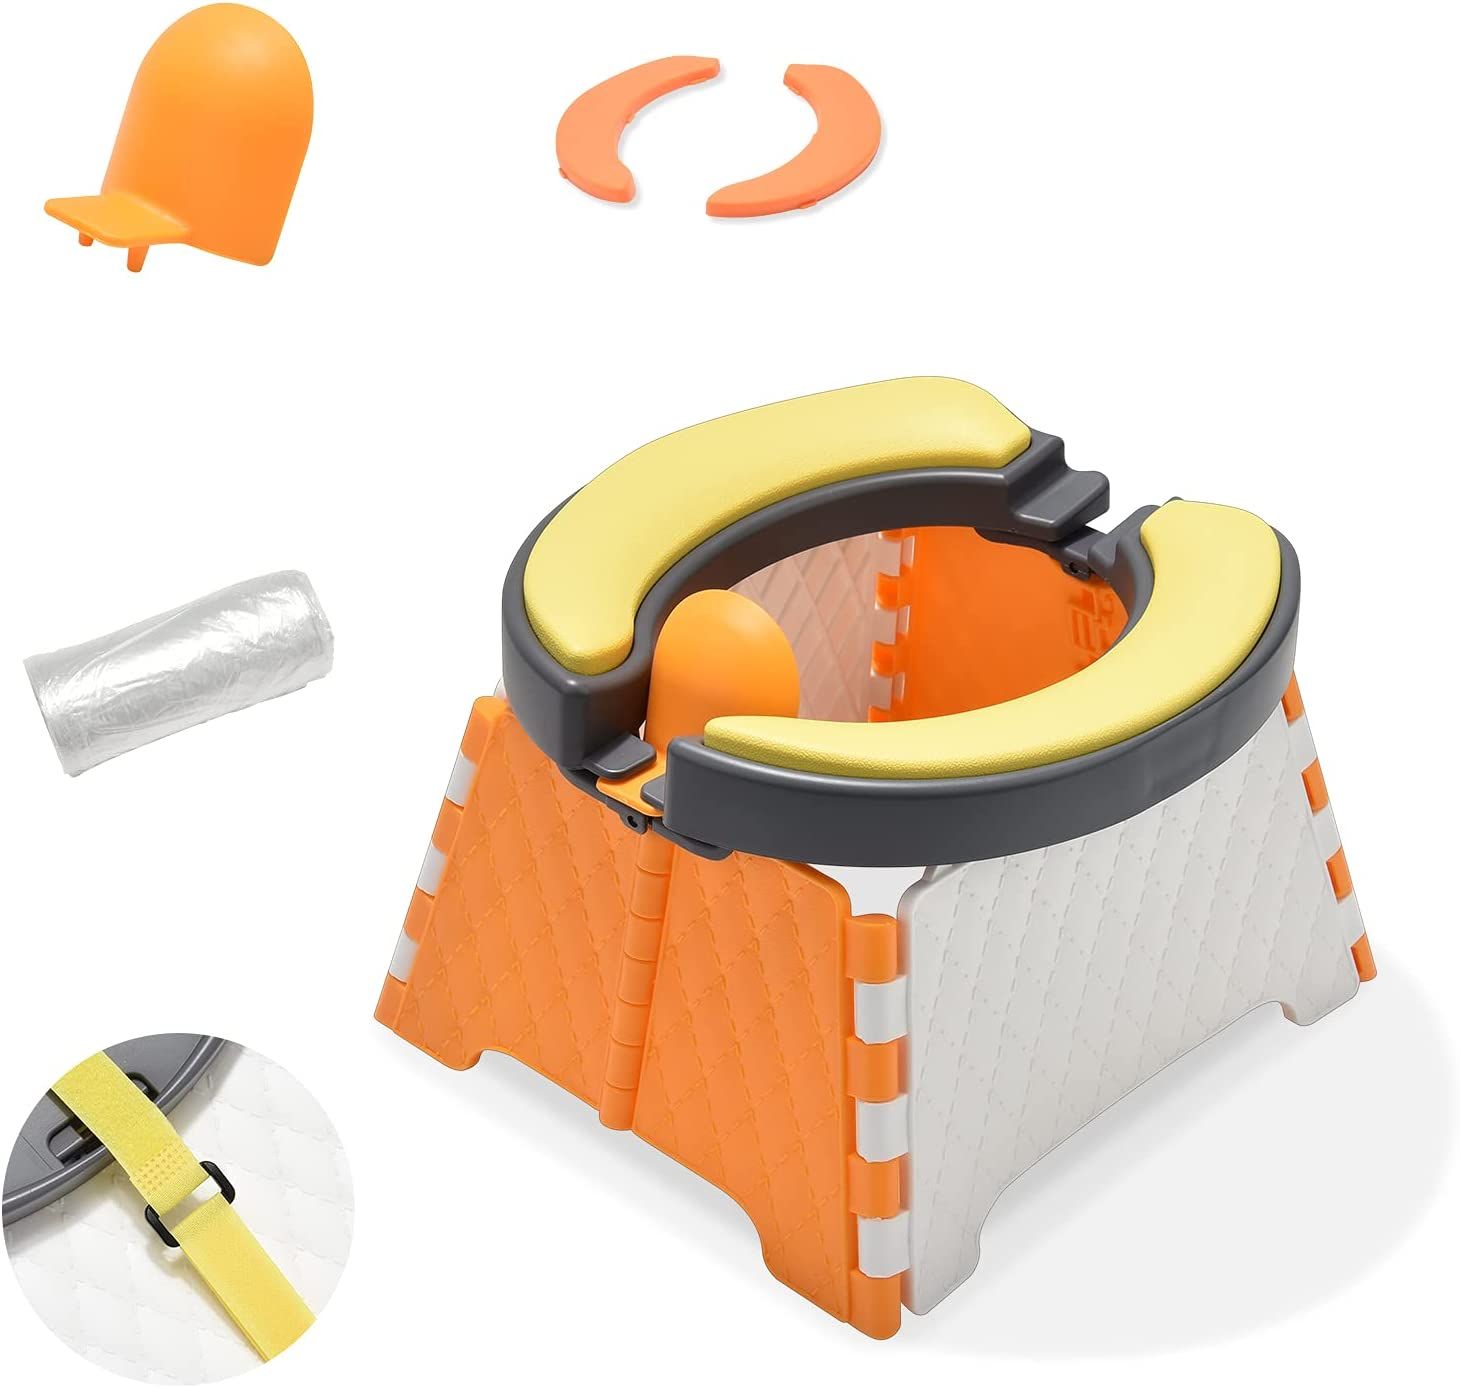 Travel Potty, DEMINE Foldable Toilet Trainer Baby Potty Seat with Splash Guard Portable Potty Training Seat for Toddler Kids Travel Potty for Indoor and Outdoor